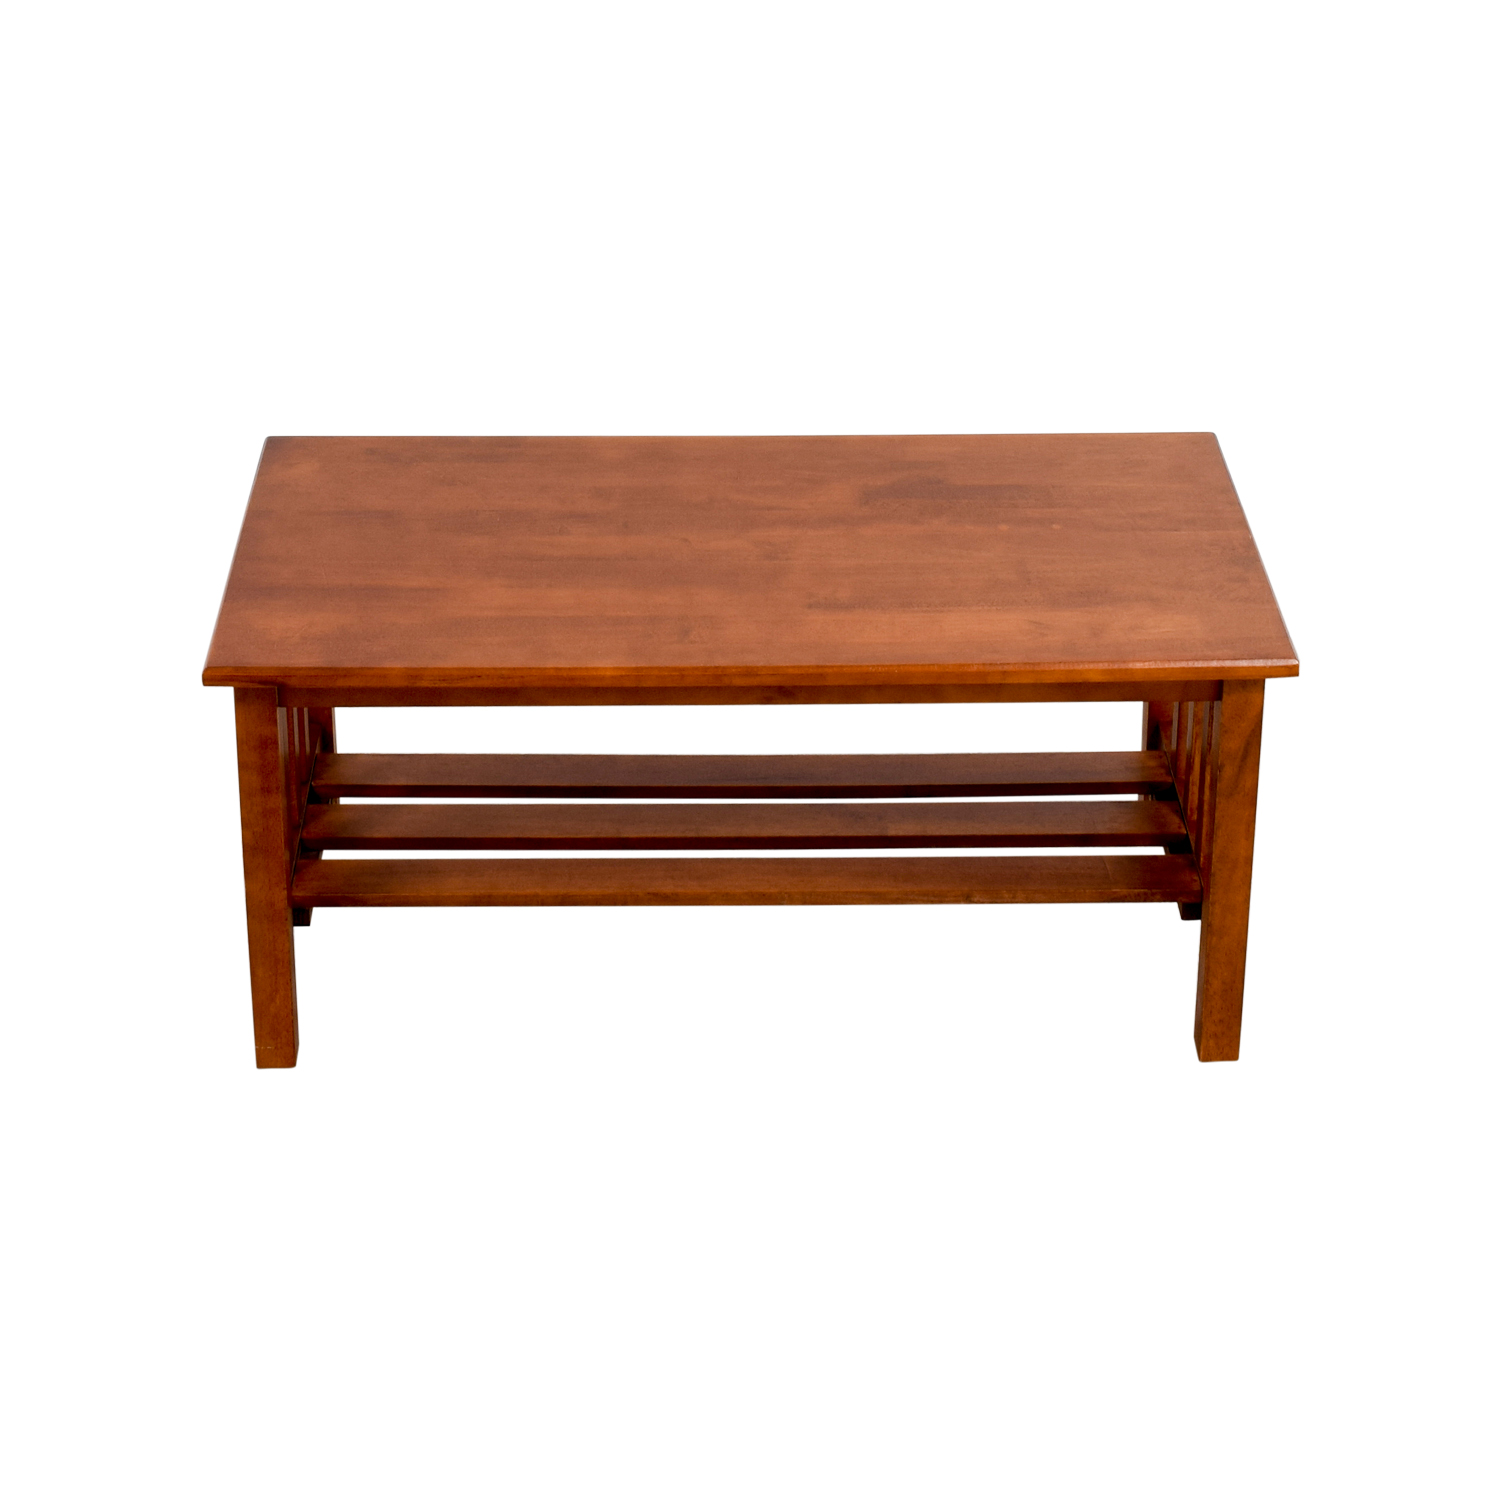 Shop Craftman Caged Wood Coffee Table Tables